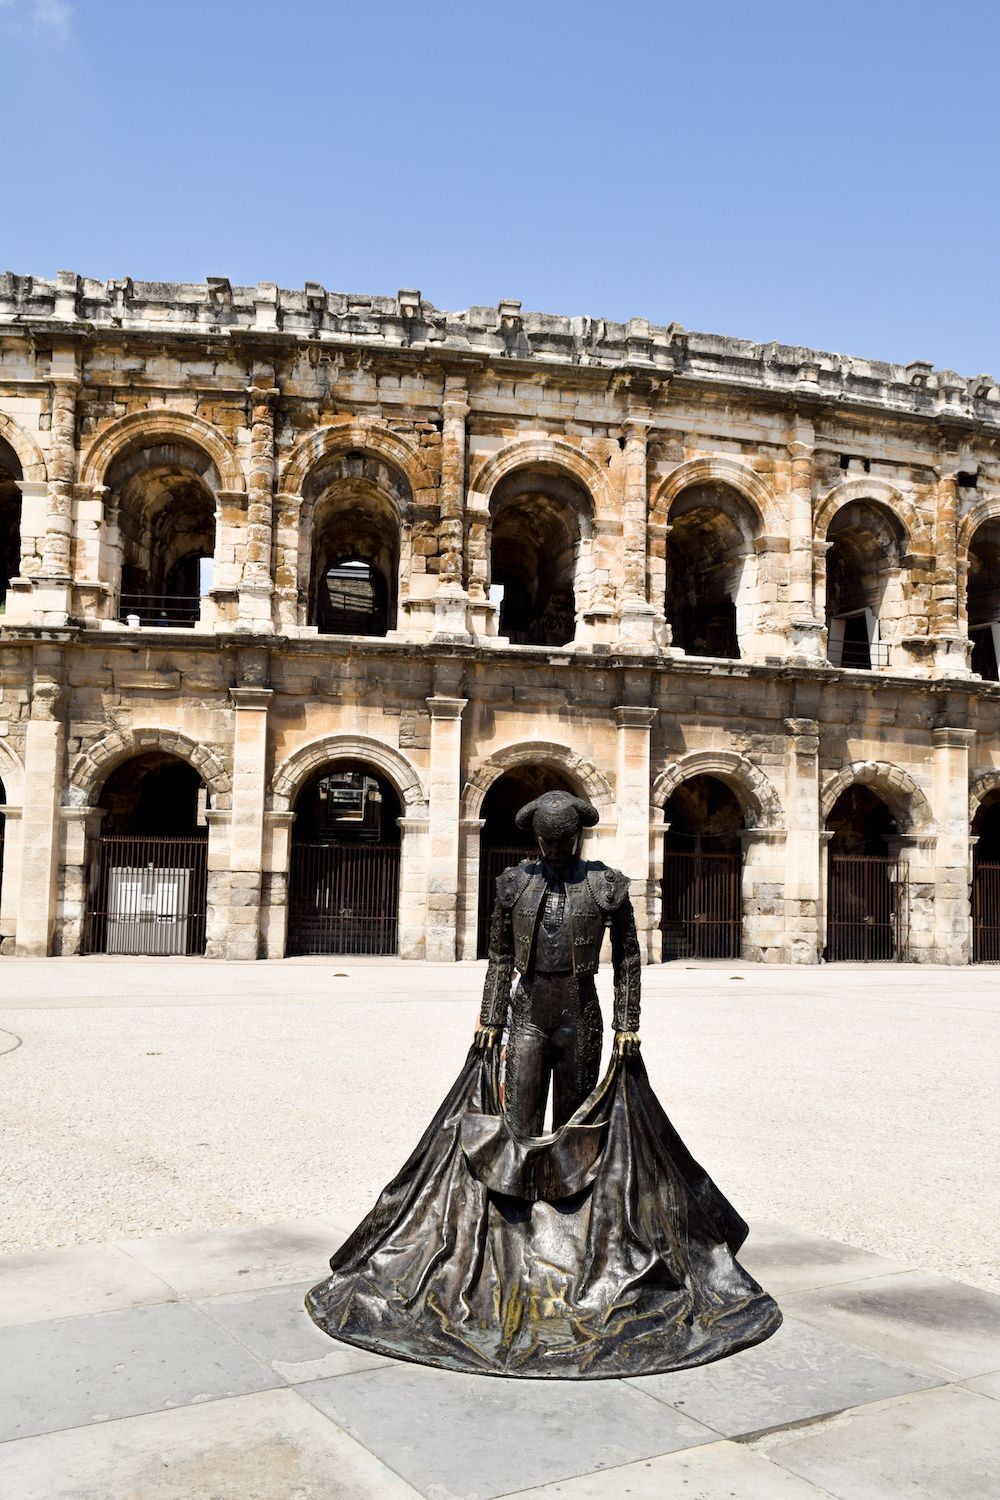 See ruins of the Roman Empire in France: Nîmes Amphitheatre